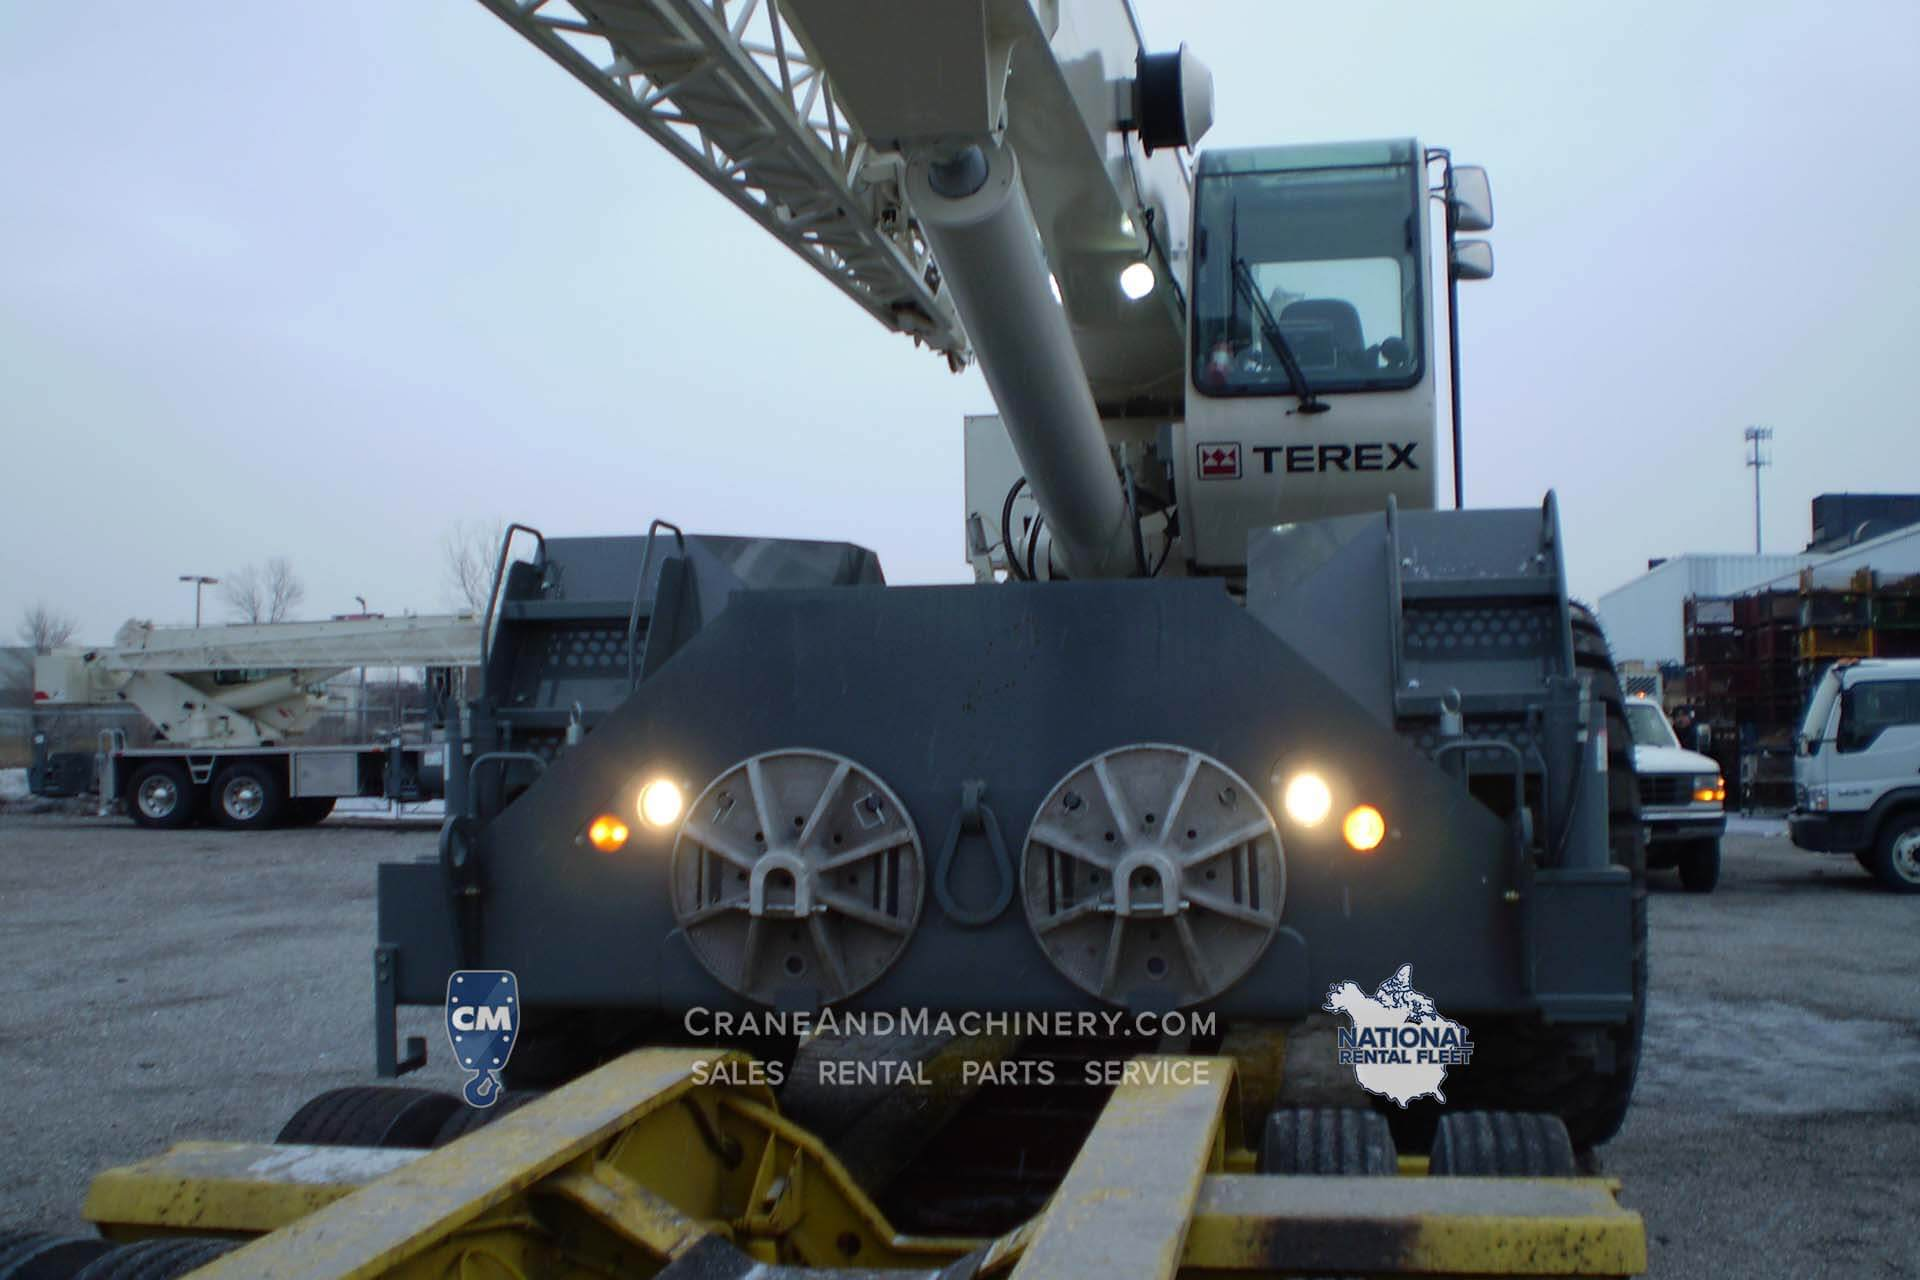 2001 Terex Rt555 Crane And Machinery Chicago Il